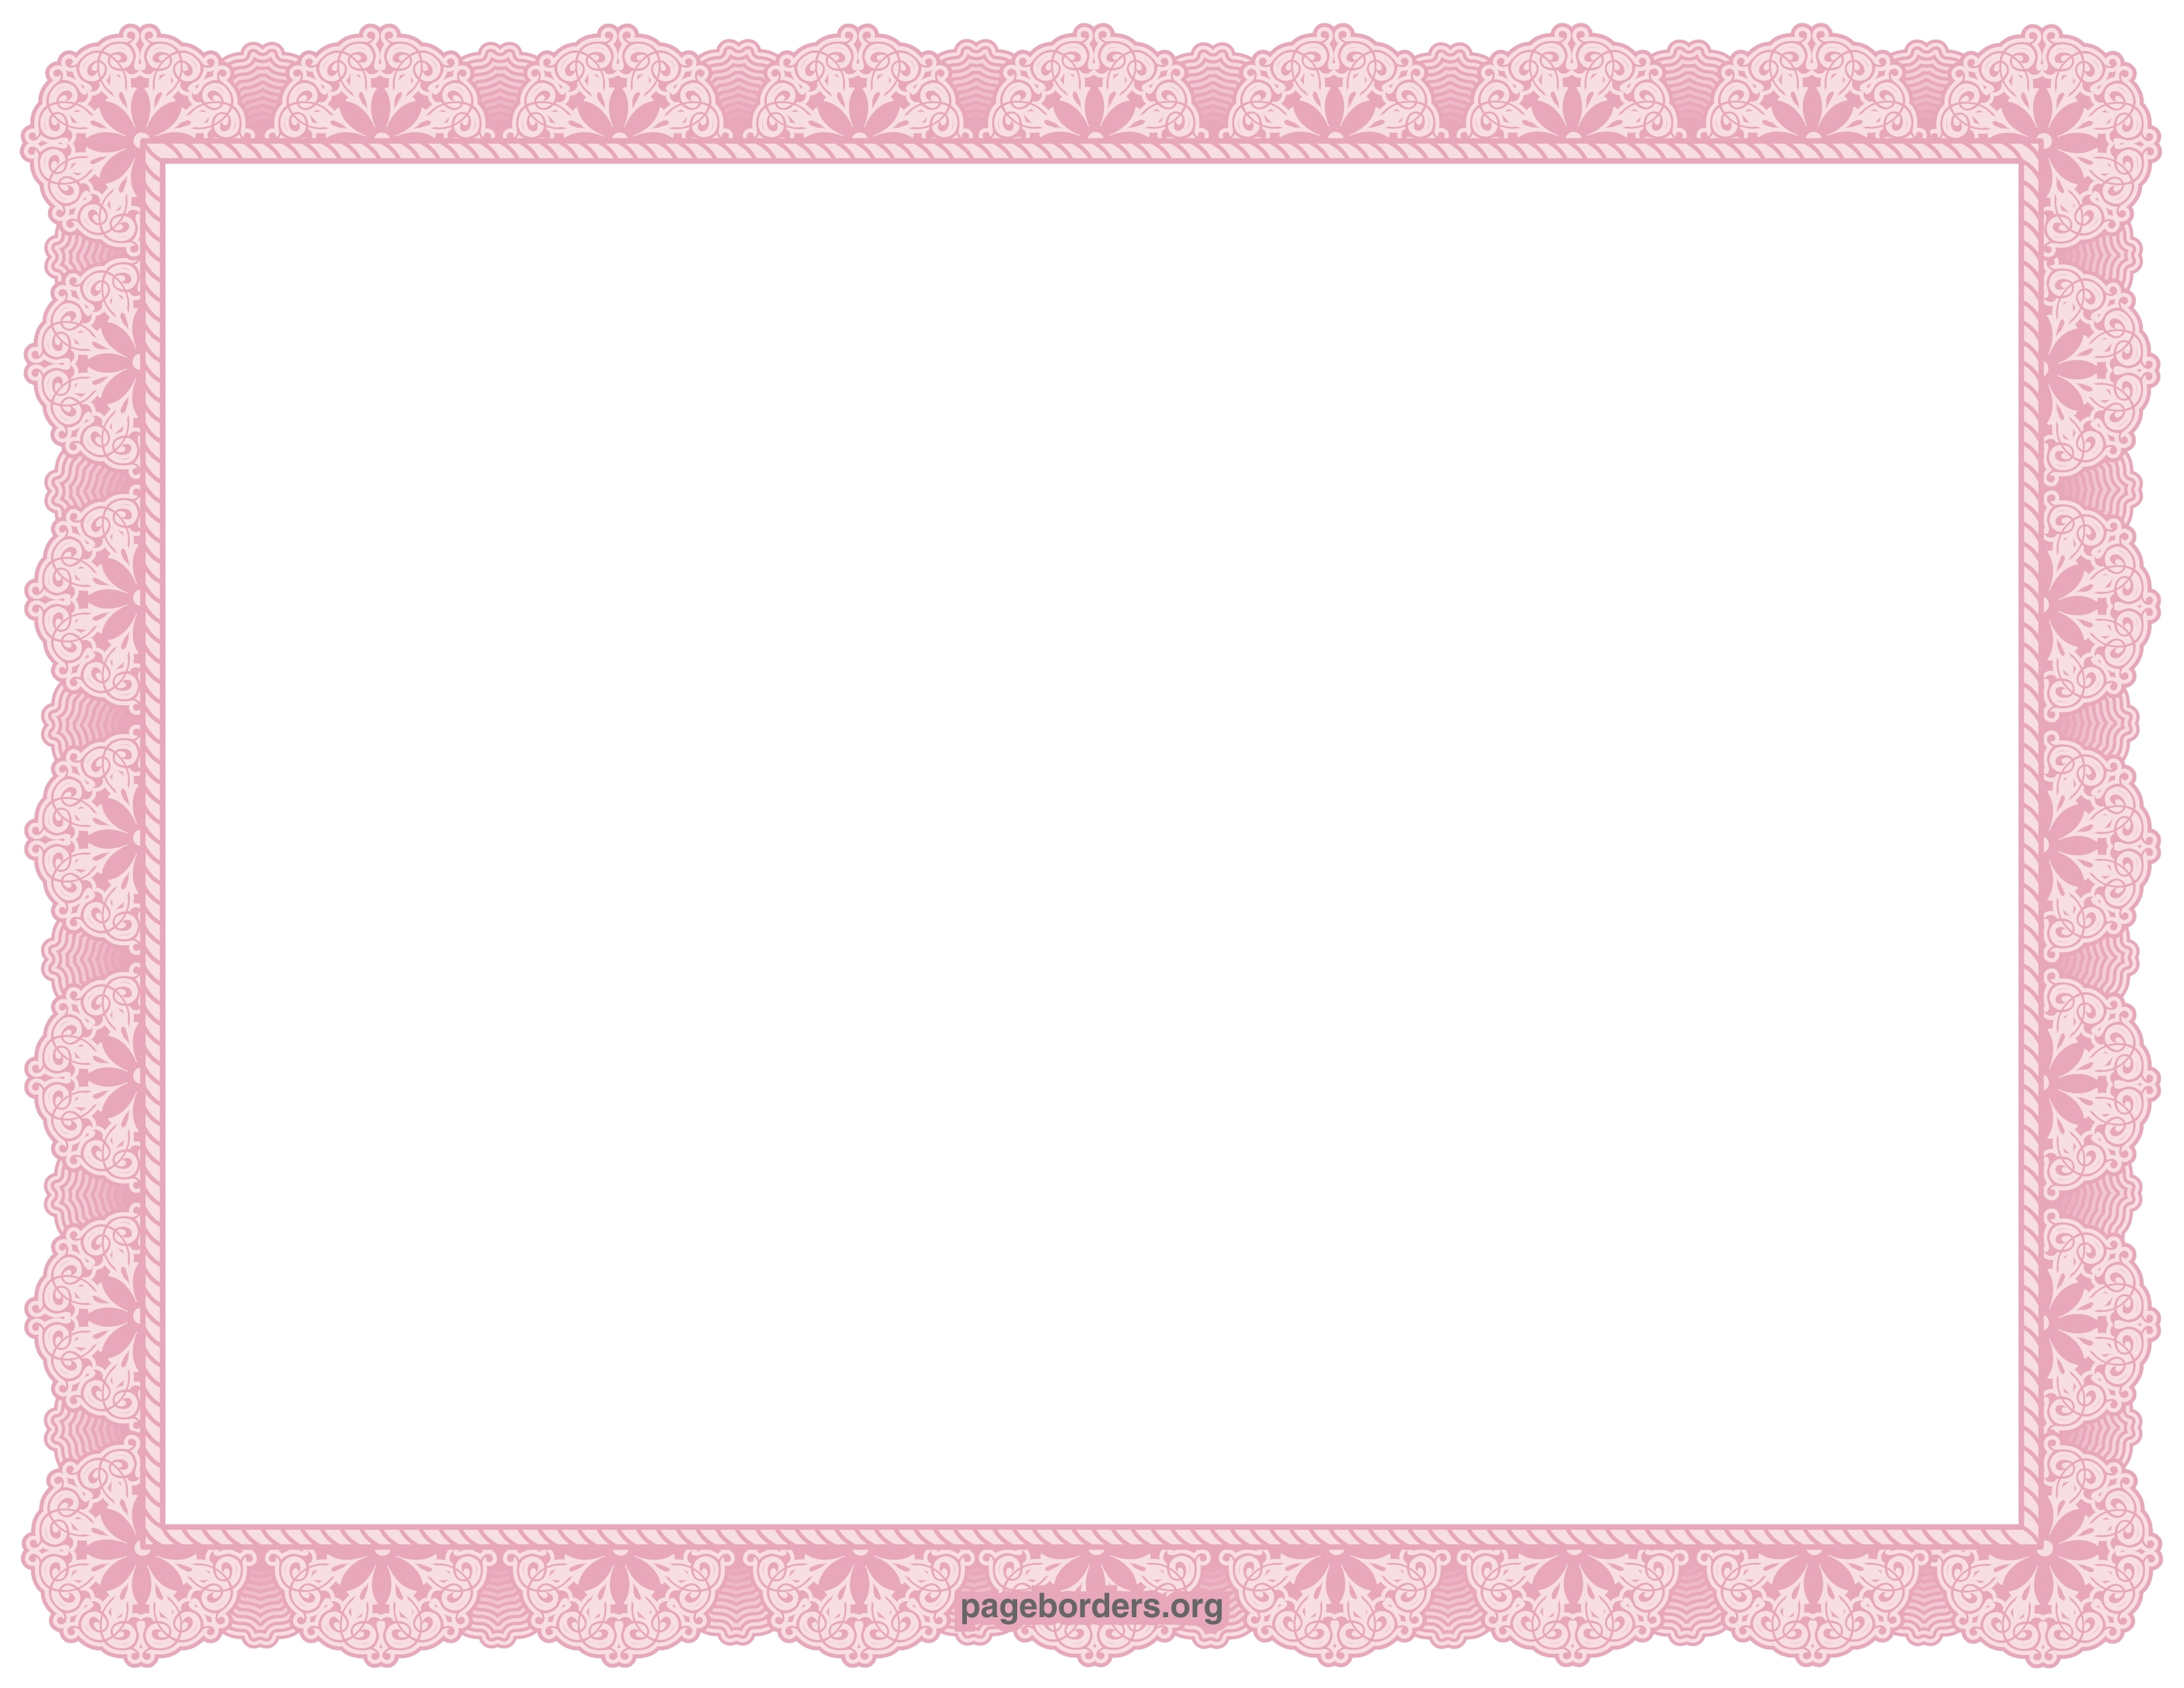 Certificates borders free download clipart best for Certificate border vector